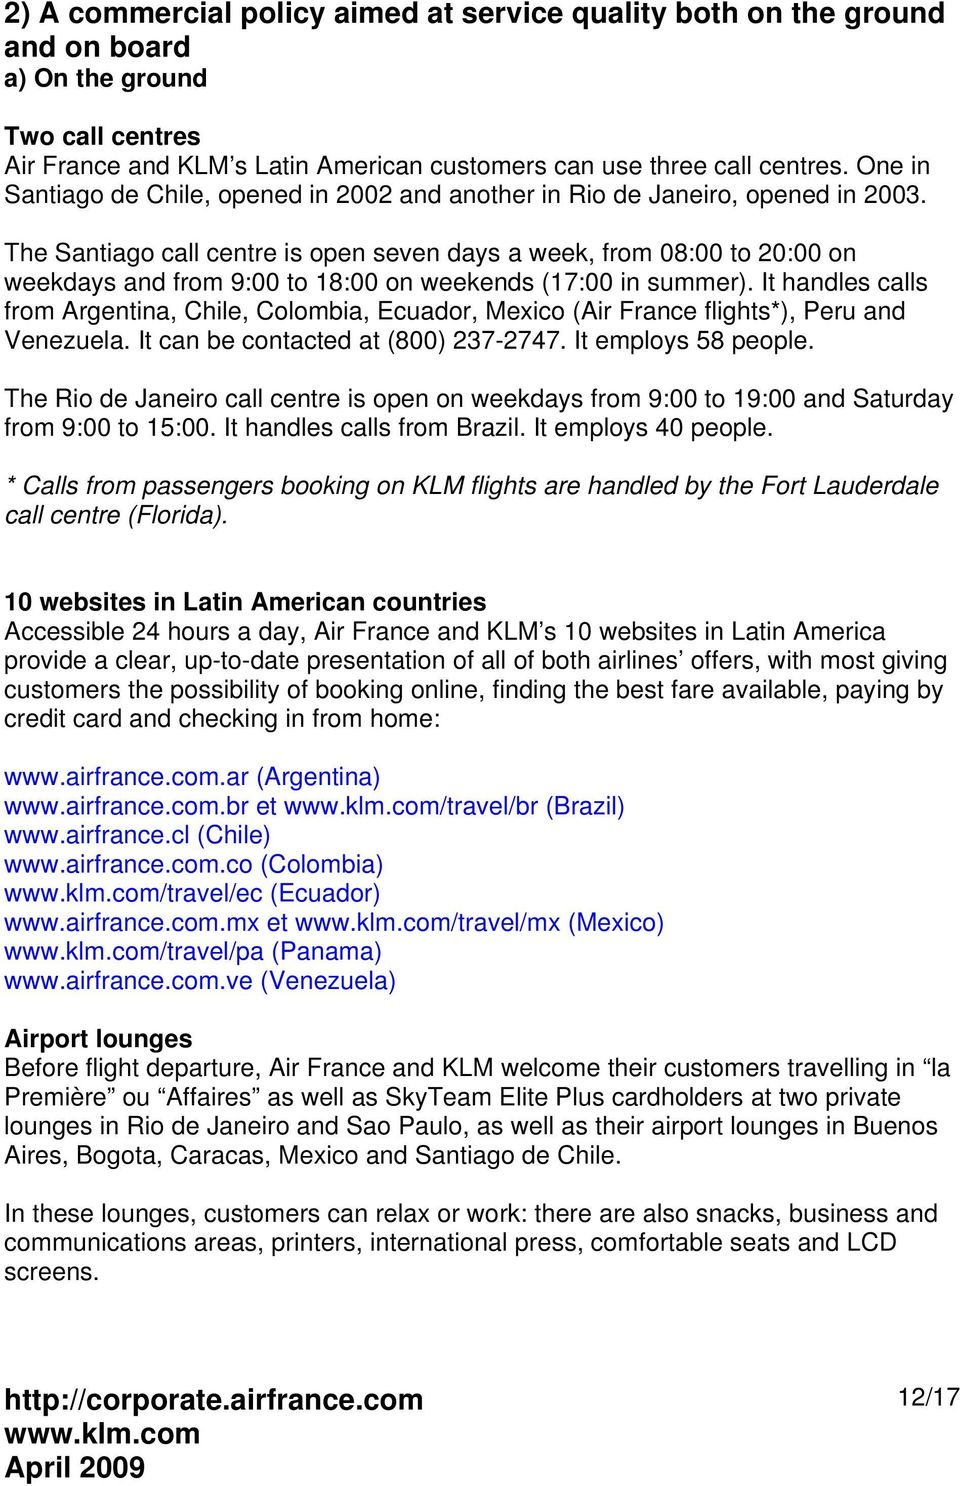 AIR FRANCE AND KLM IN LATIN AMERICA PDF - Invoice klm